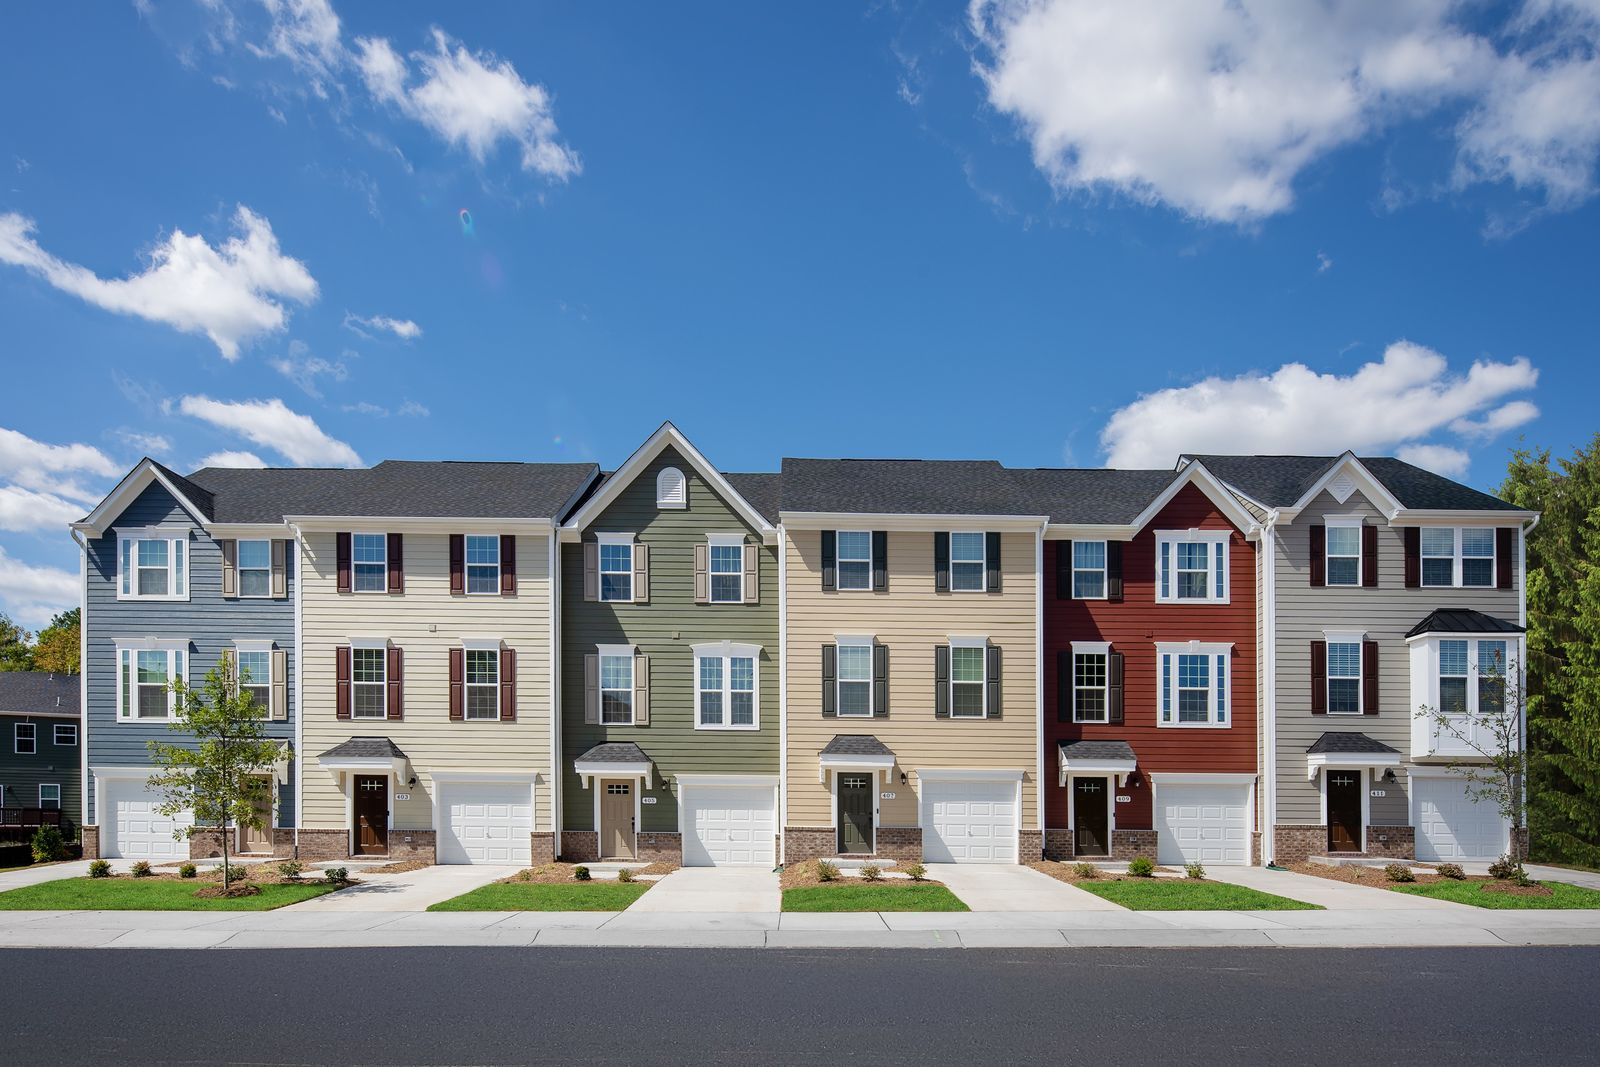 Welcome to Independence Square:New townhomes with garage in Gloucester Township priced from the low $200s.Click here to join the VIP list for exclusive pricing and incentives!